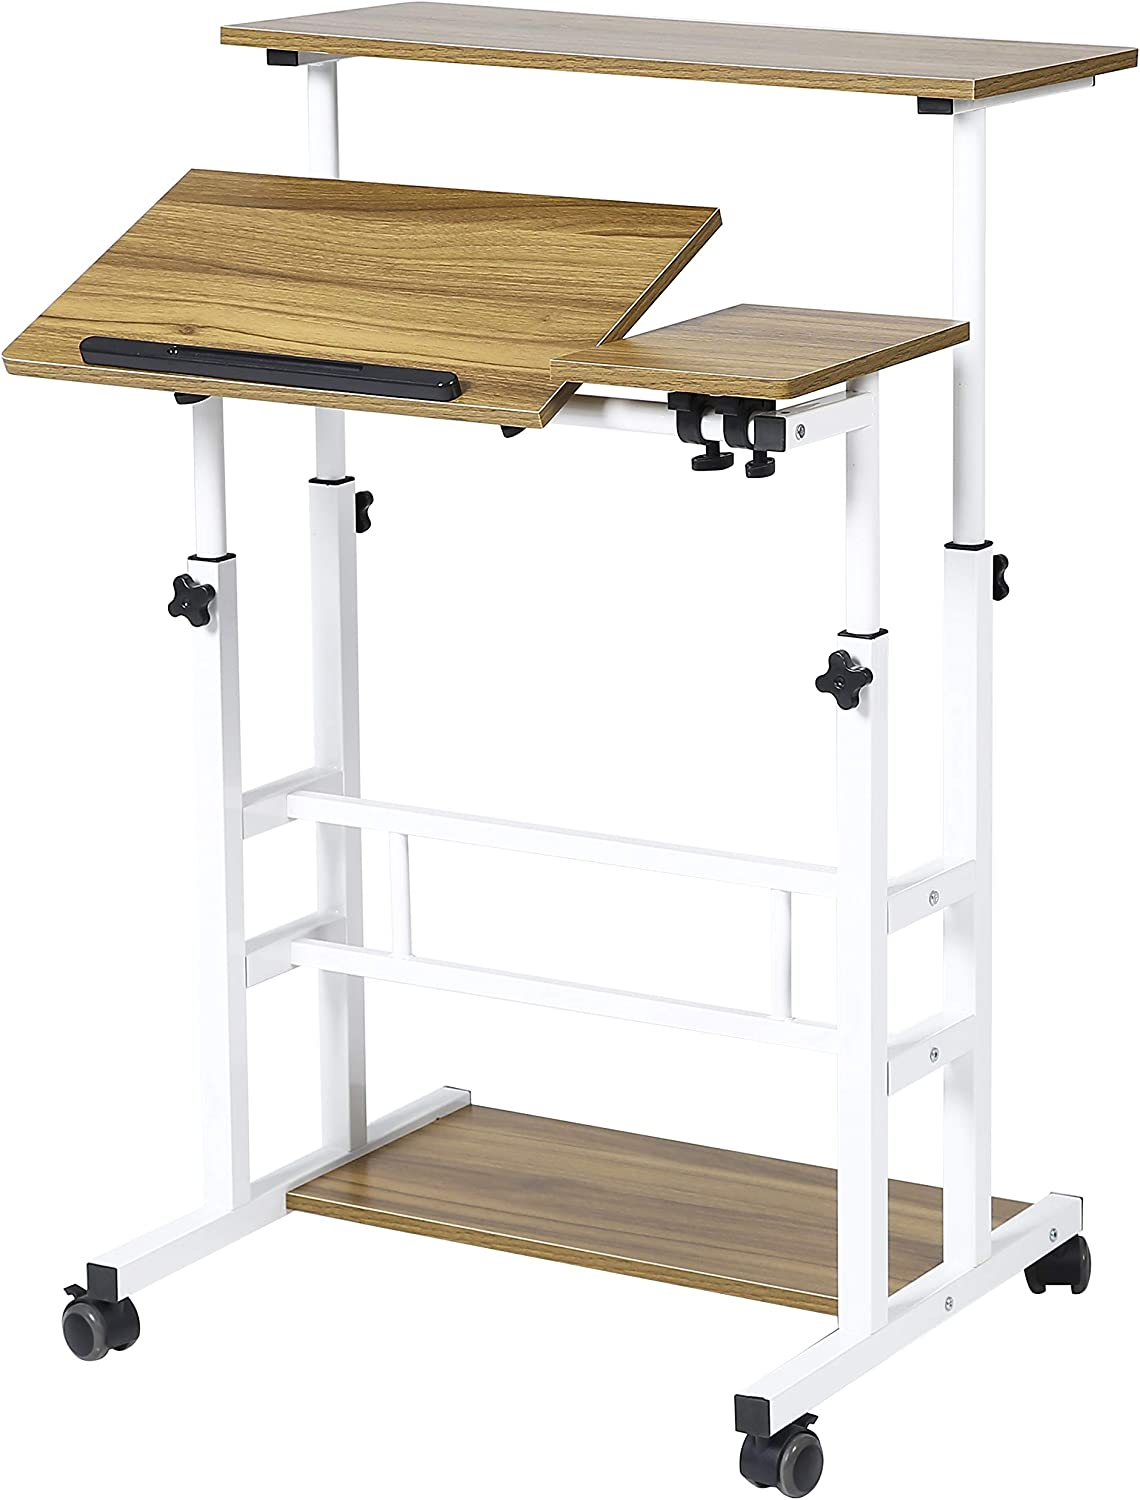 UNICOO- Height Adjustable Sit Stand Workstation, Mobile Standing Desk, Rolling Presentation Cart, Stand Up Computer Desk with Dual Surface for Home Office (U101 - Ancient Oak)